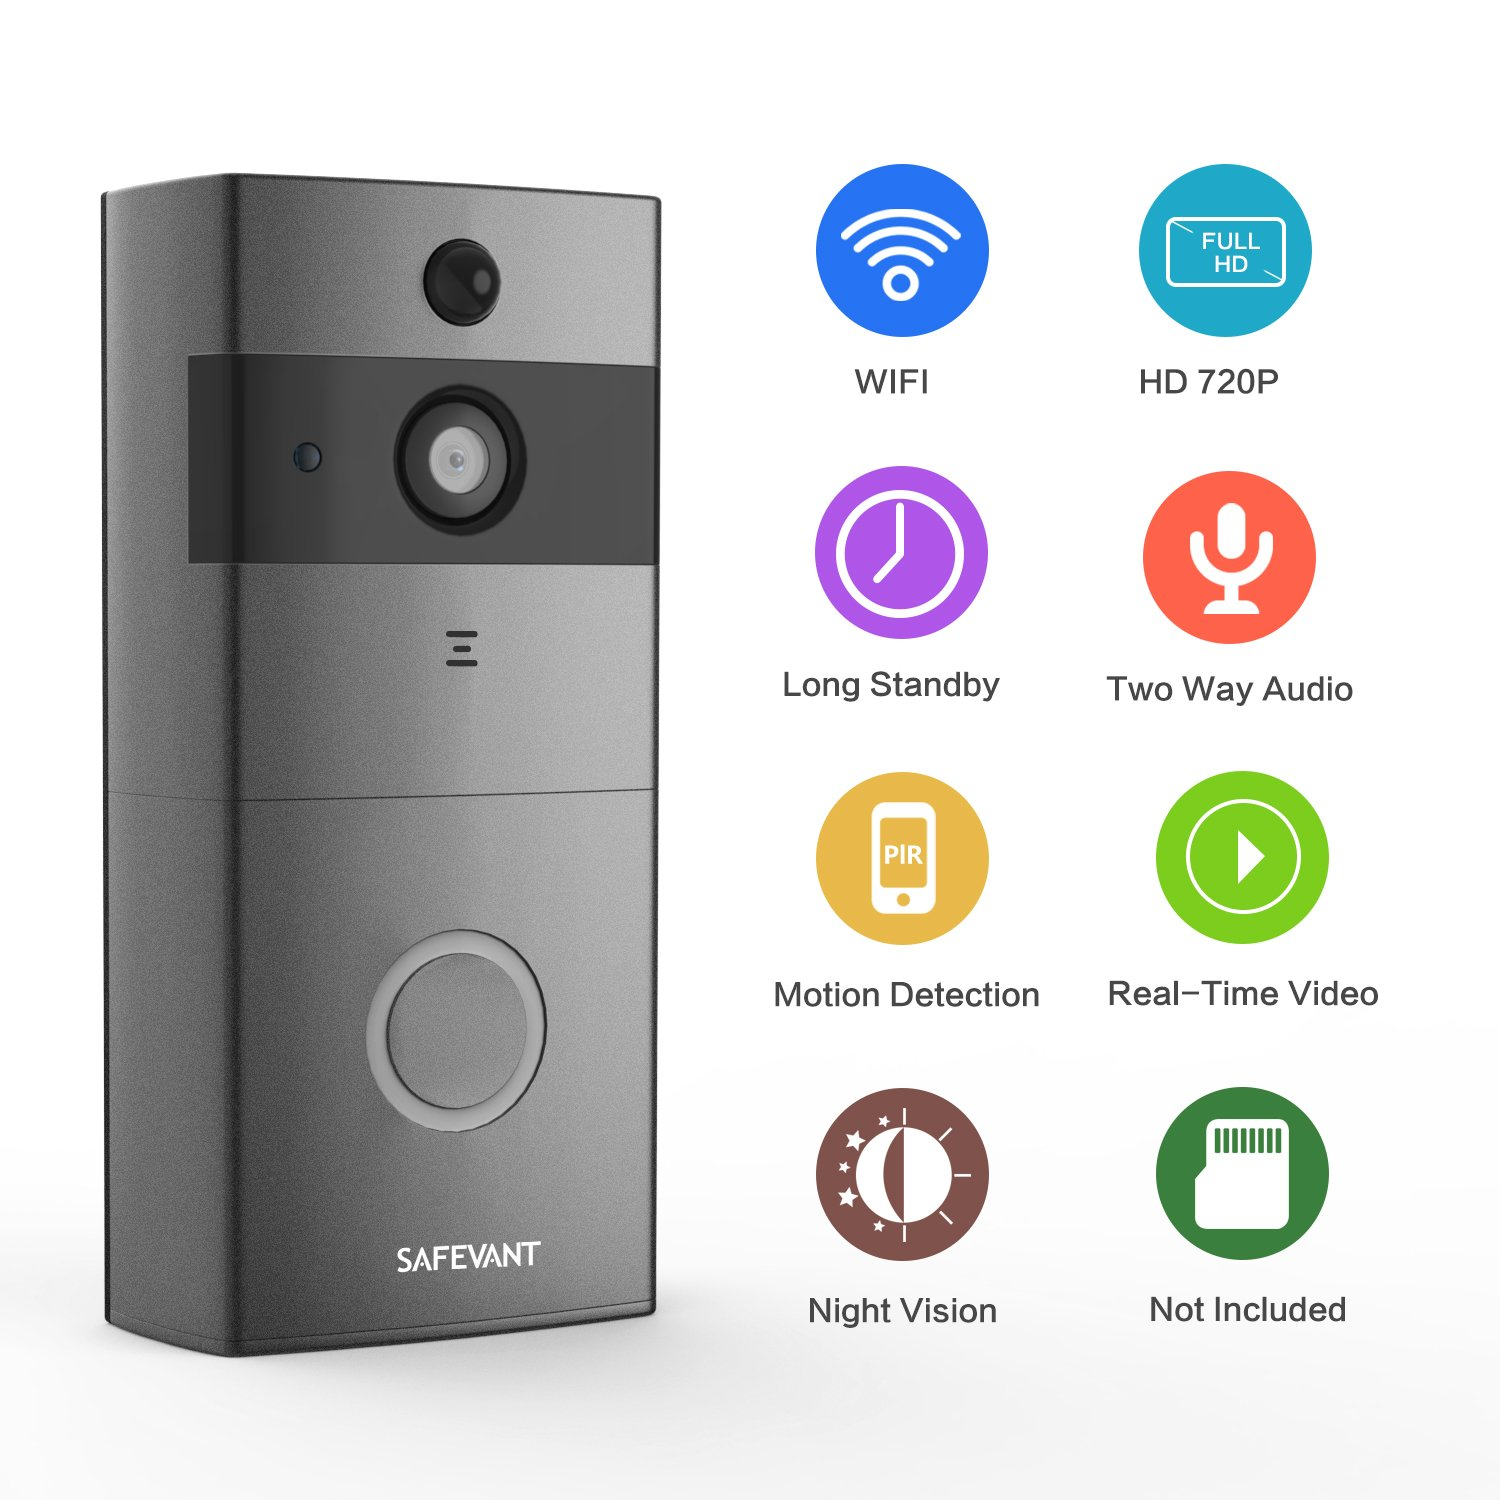 [2018 Newest] Doorbell Wireless,Safevant Smart Doorbell with PIR Motion Detection,720P Doorbell Camera, Real-Time Video and Two-Way Talk,Night Vision,Phone Ring,Free APP,Gray